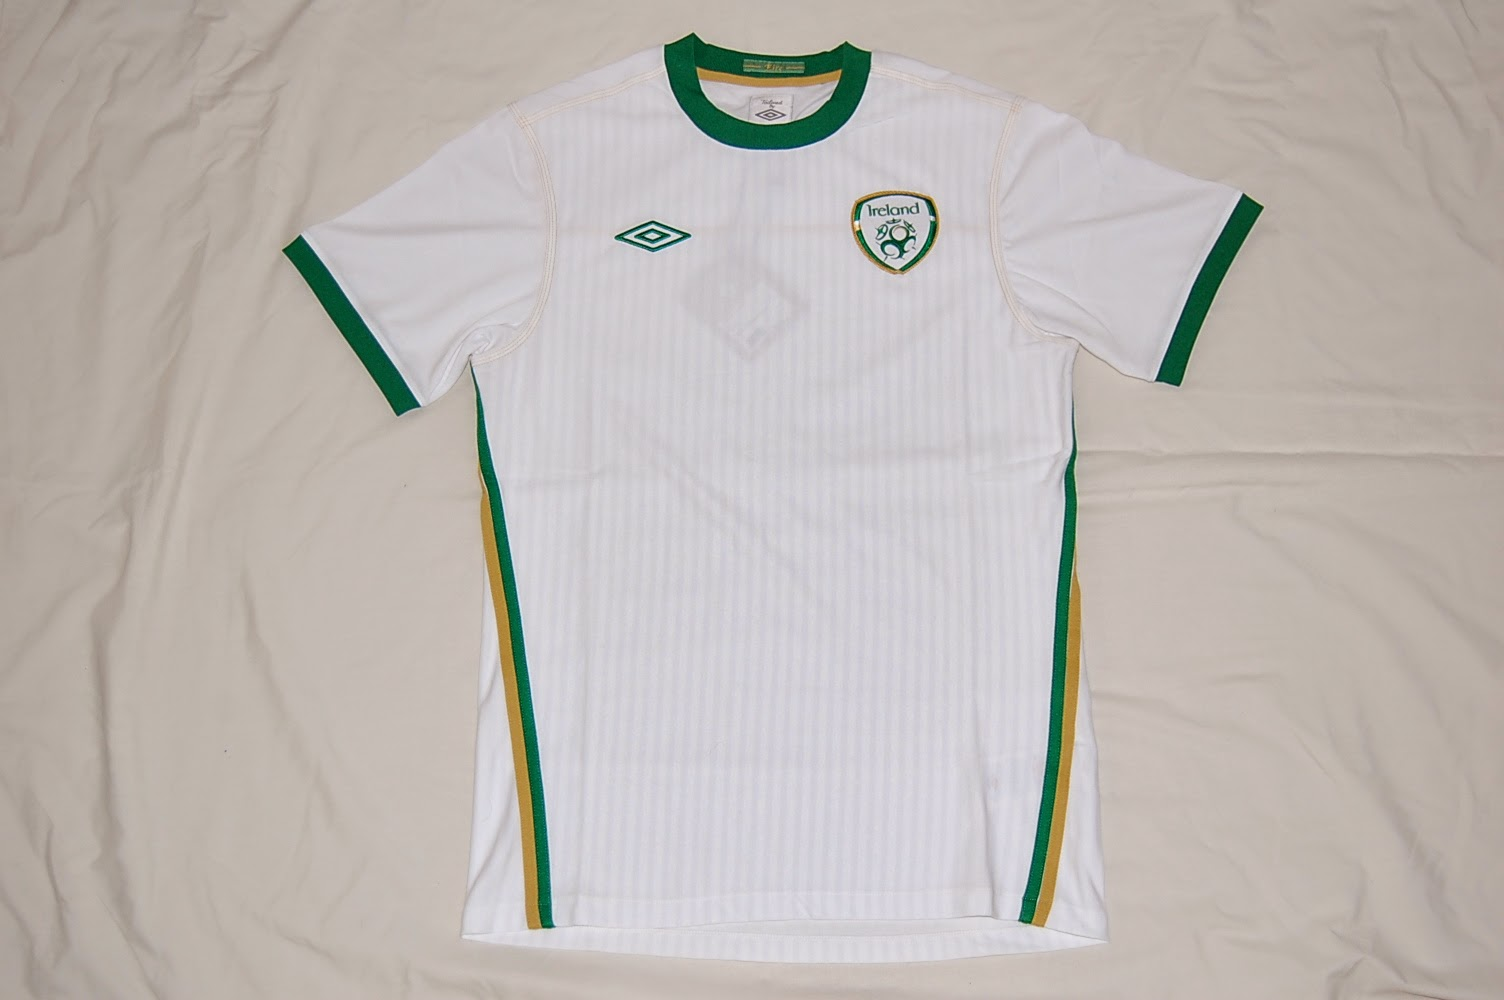 af0b81b7cfc Away 2010 12  Umbro. Another Irish shirt to add to the collection. In my  mind